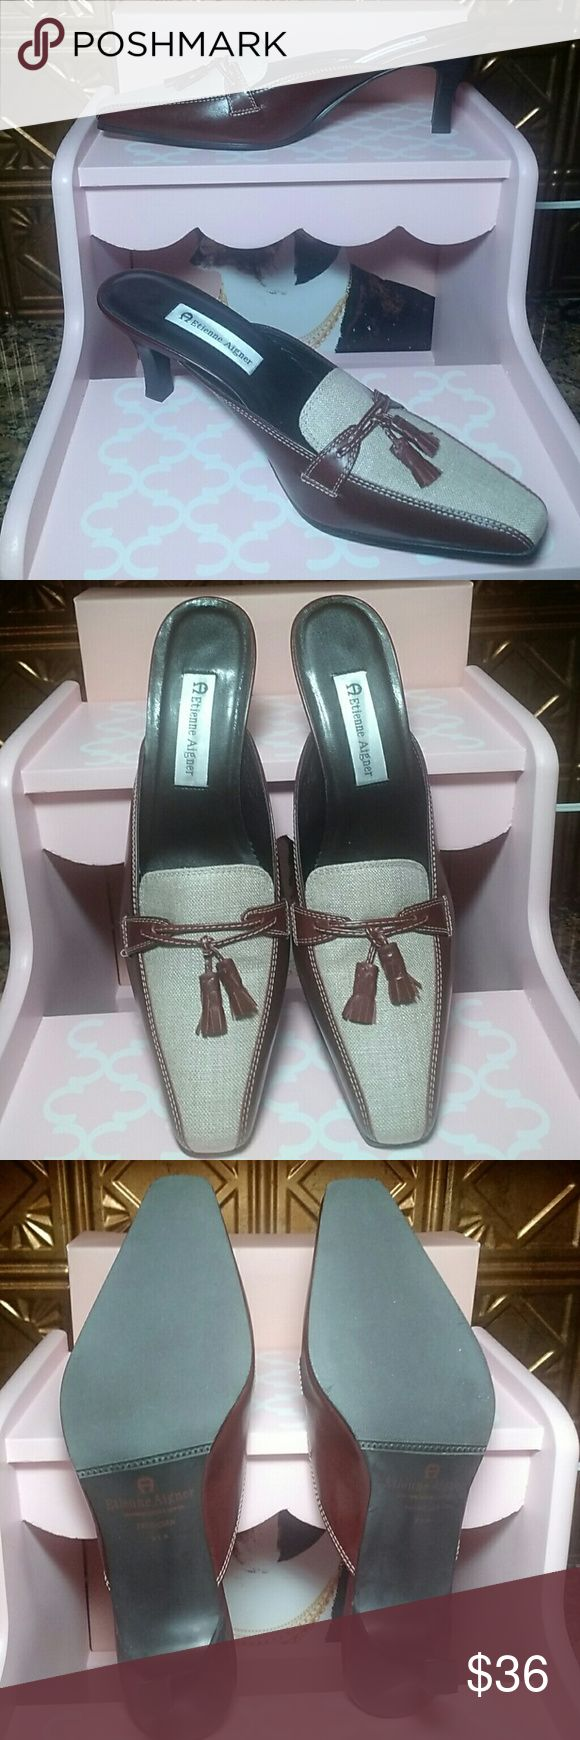 """NWOT!  Etienne Aigner 'Patrician' Leather Mules Leather/textile uppers w/tassels.  Heel height:. 3"""".  Size:. 9.5M Etienne Aigner Shoes Mules & Clogs"""